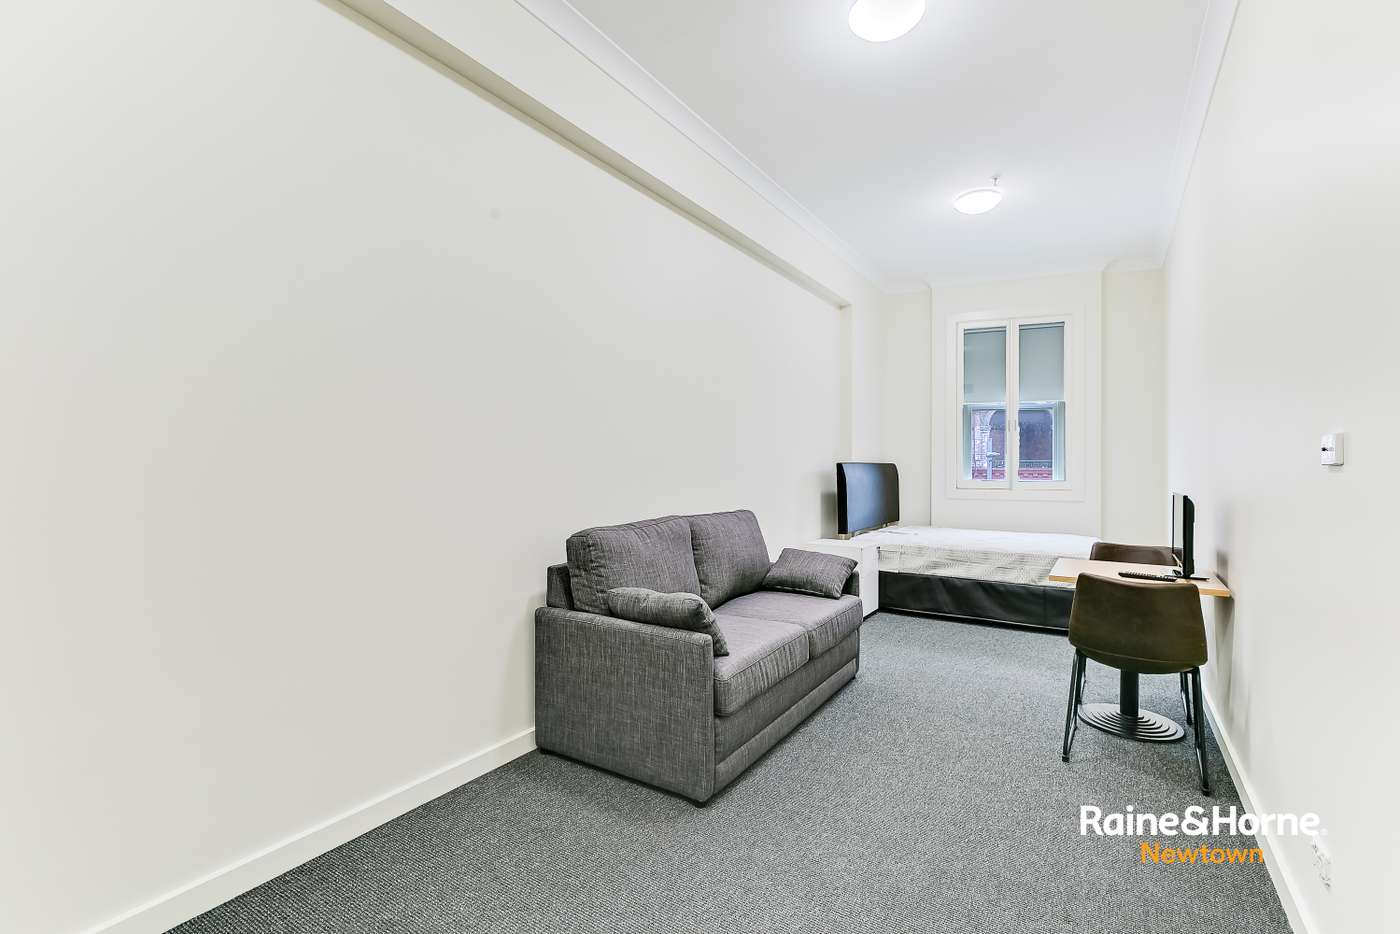 Main view of Homely studio listing, 304 King Street, Newtown NSW 2042